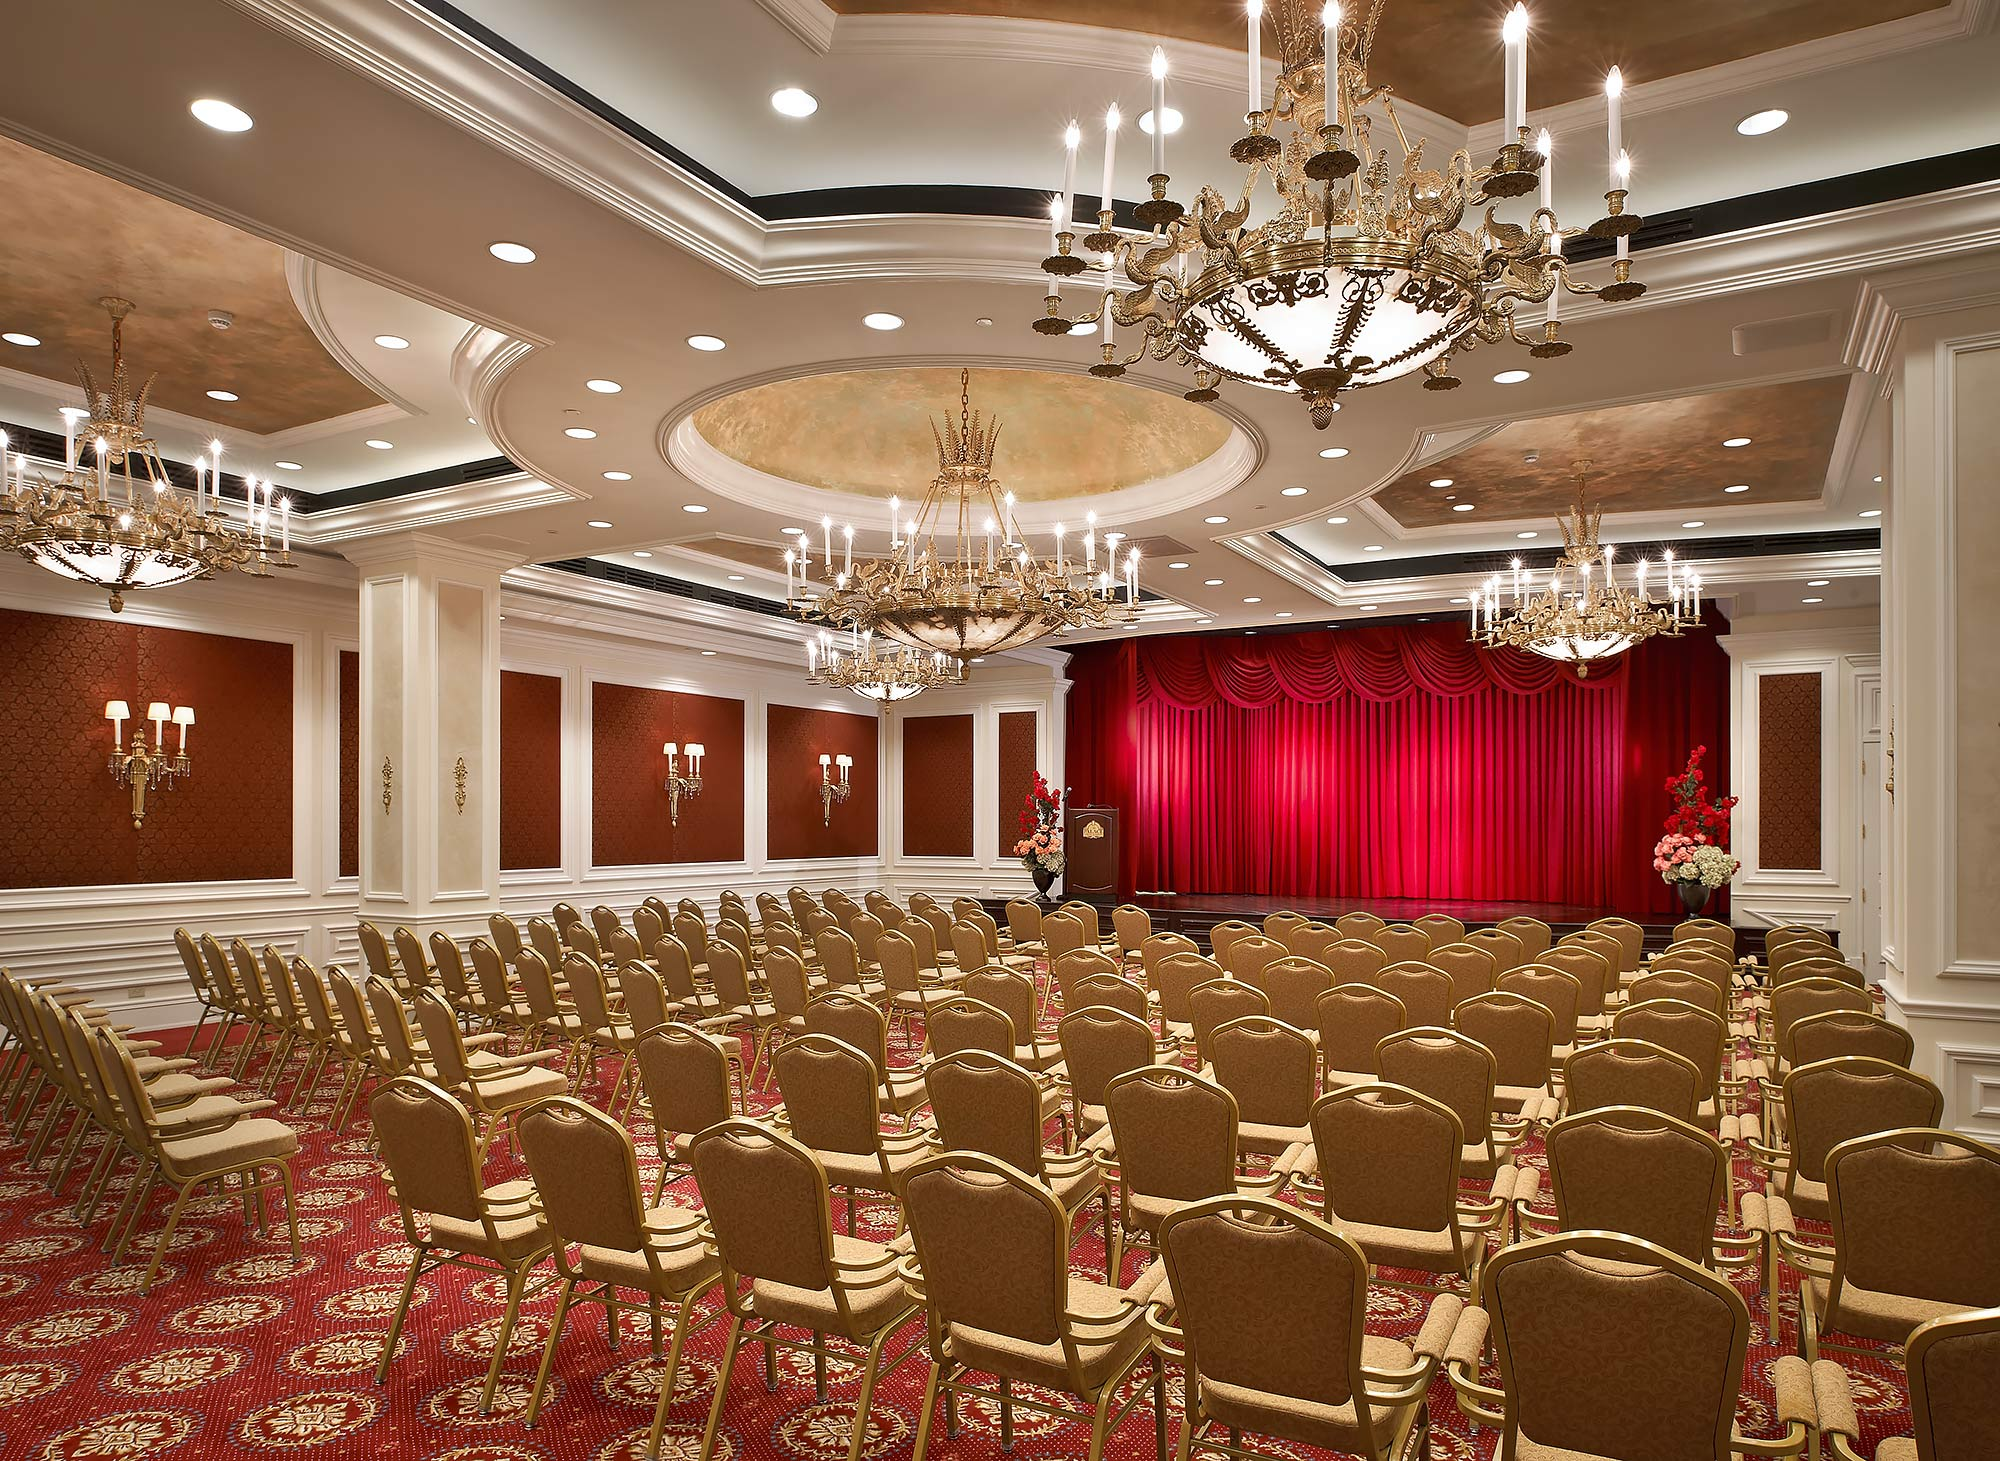 Theater-Interior-Seating-The-Palace-Coral-Gables